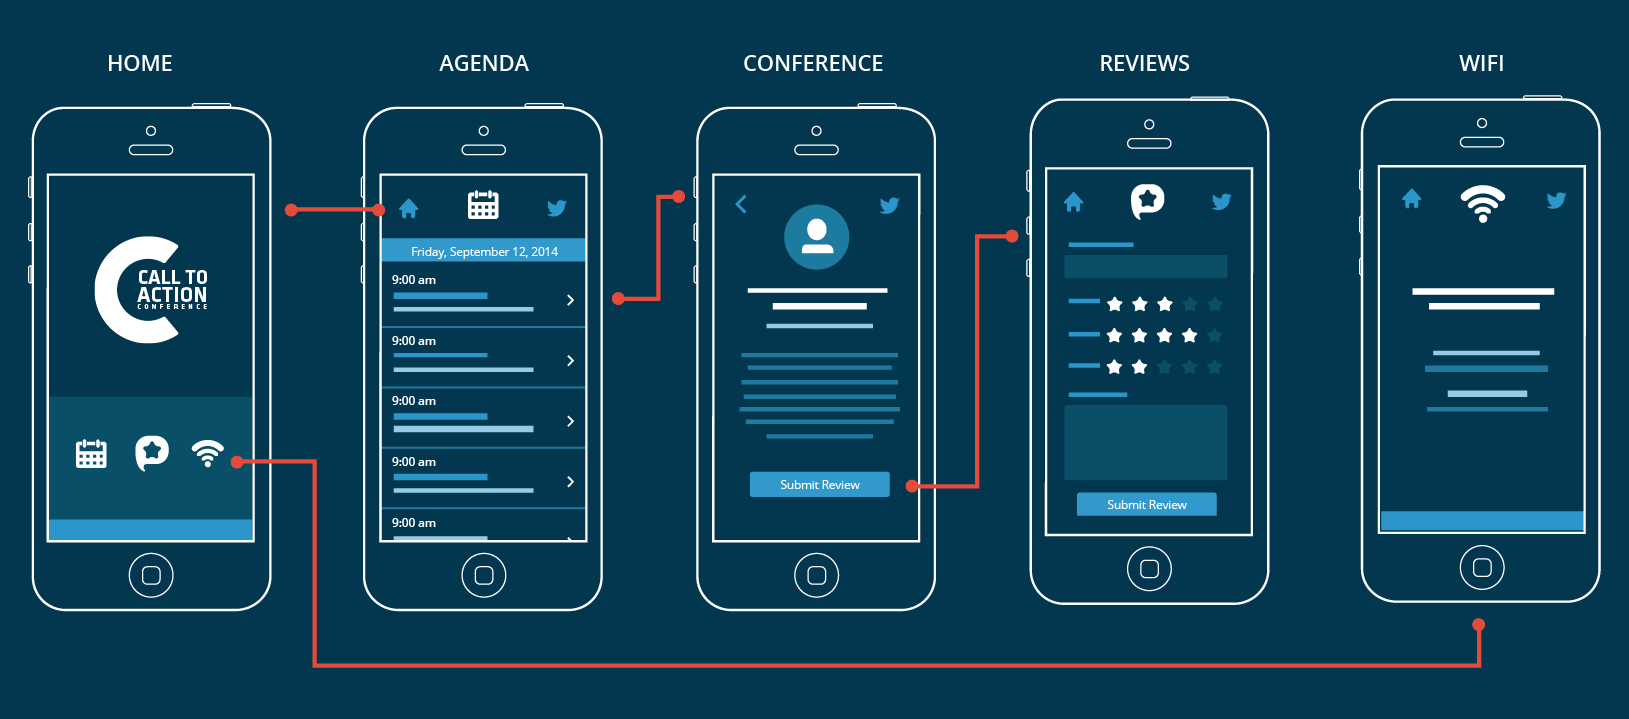 Wireframes follow sketching, giving a digital idea of the layout of the interface and how screens connect